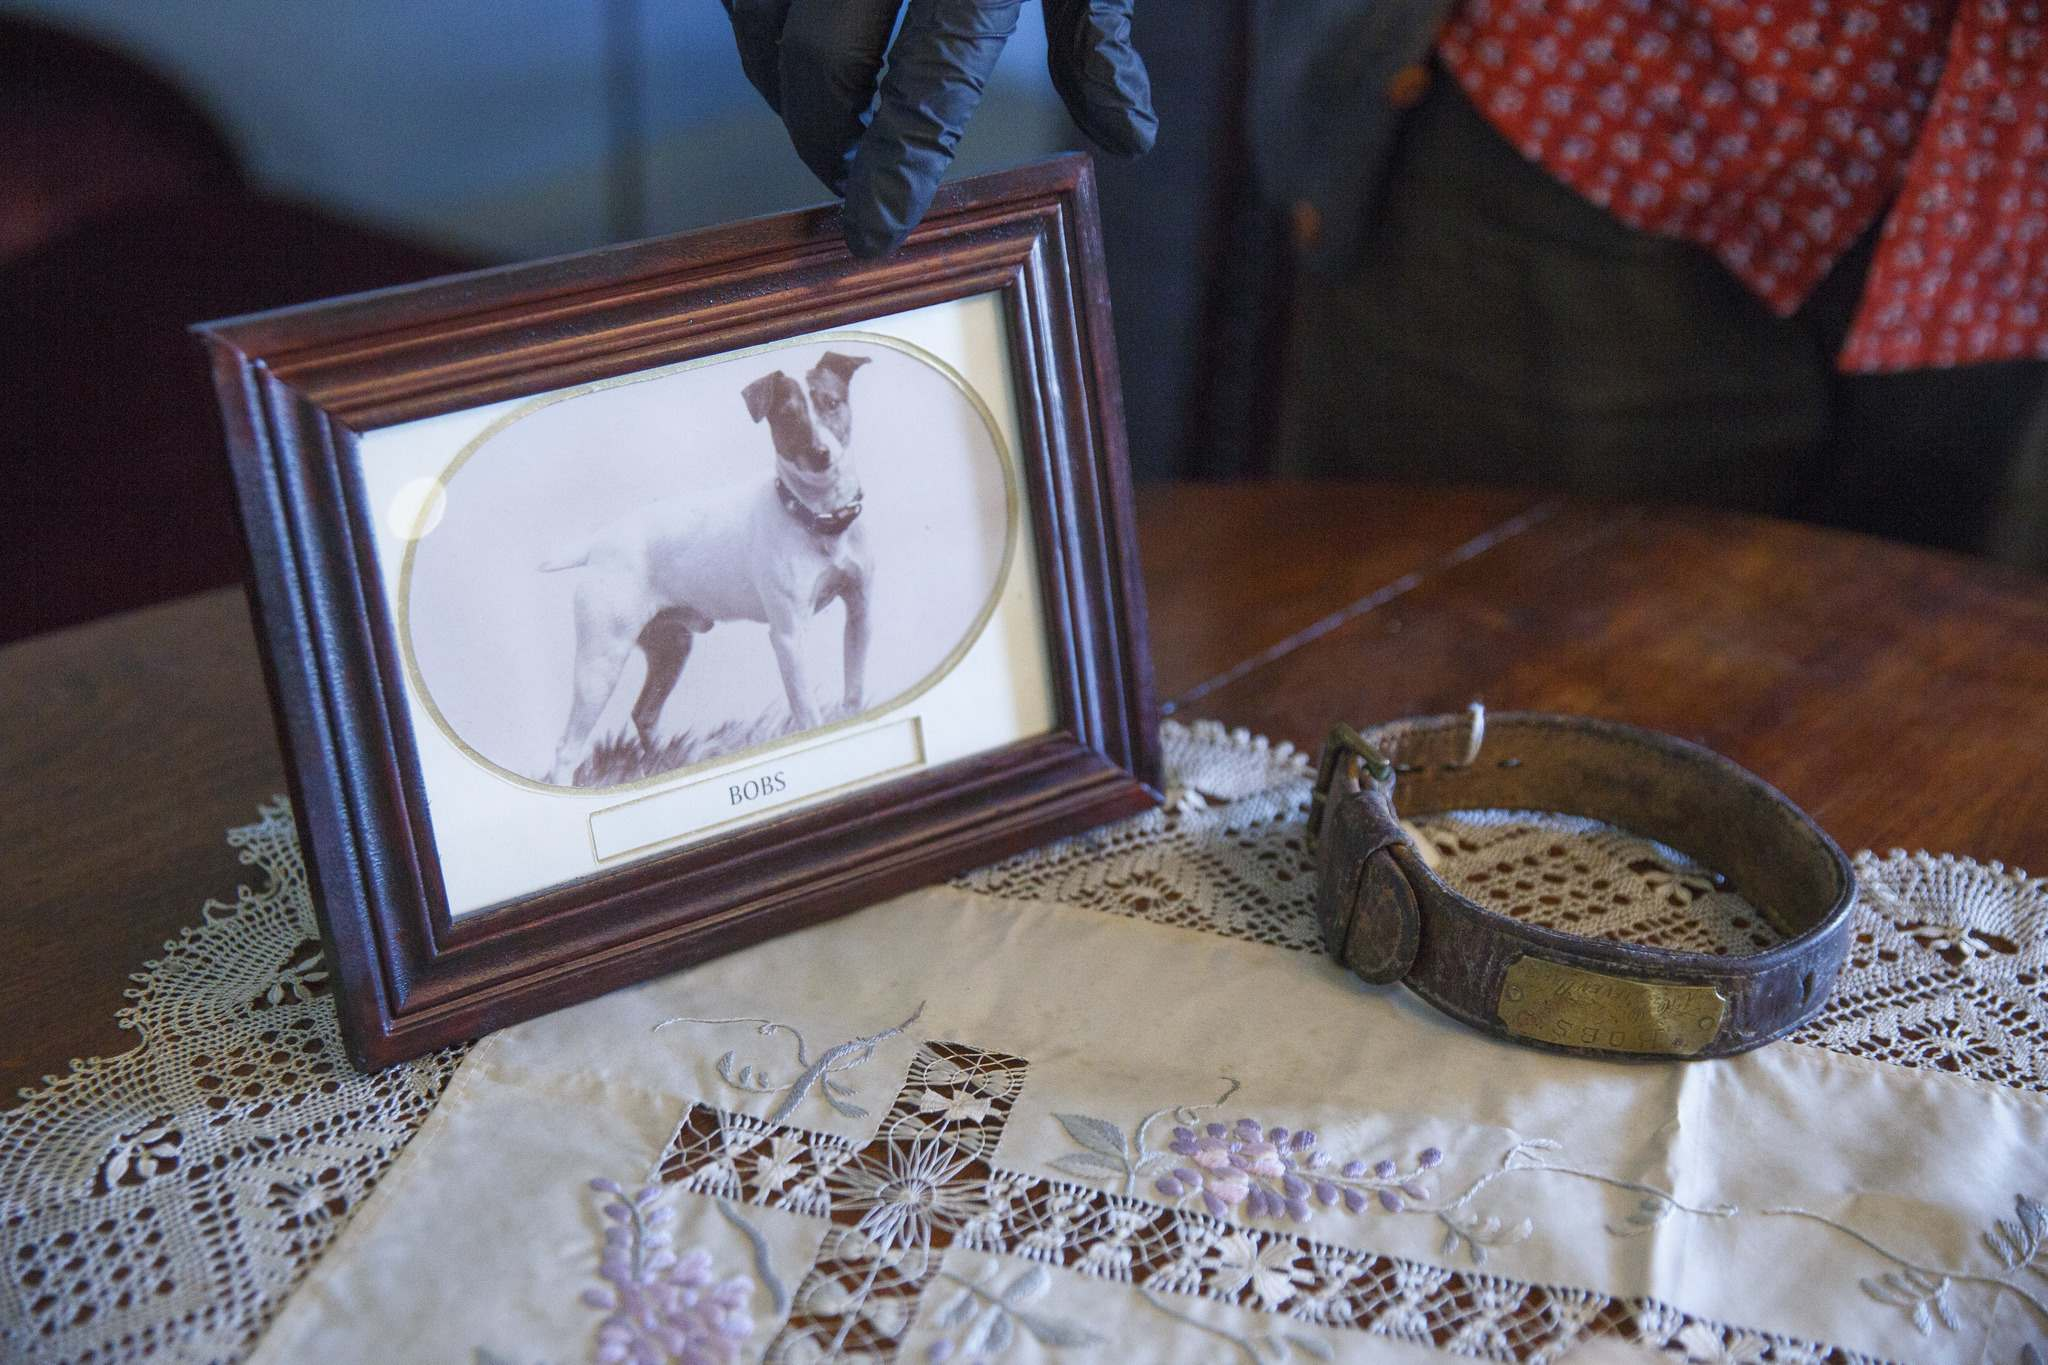 A rare photo of the Inkster family dog, Bobs, as well as his collar with engraved name plate. (Mike Deal / Winnipeg Free Press)</p>